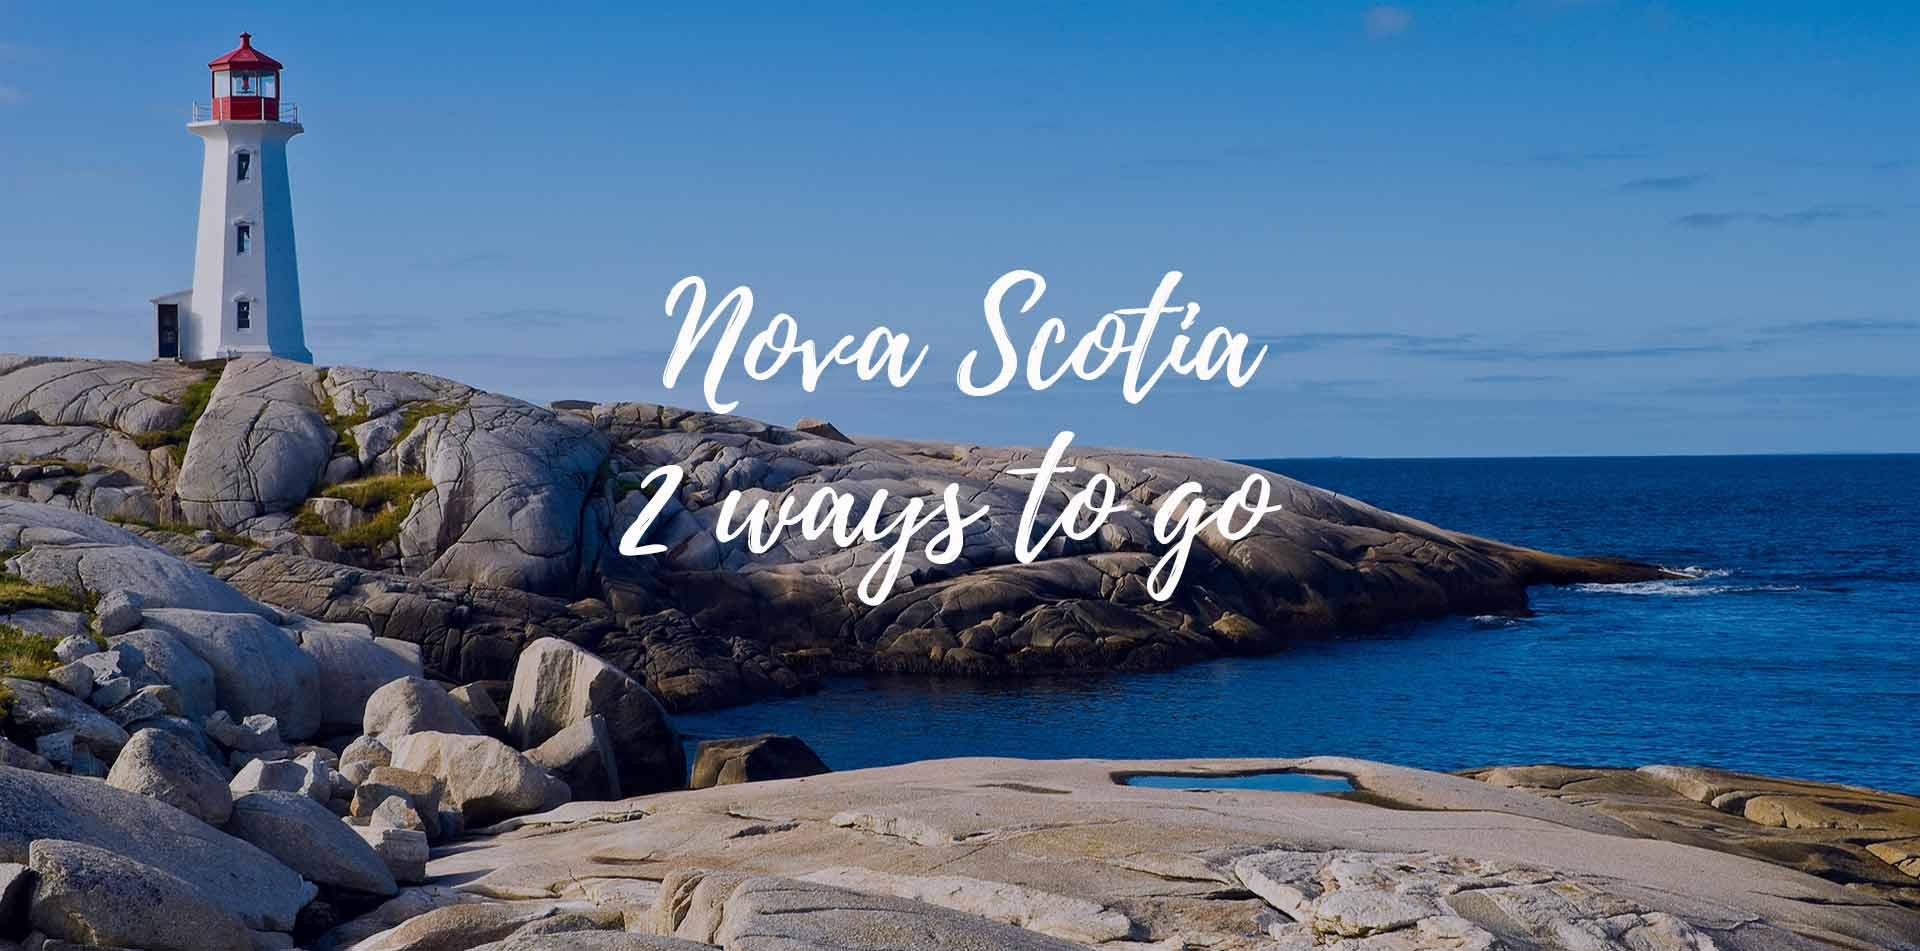 North America Canada Nova Scotia 2 ways to go scenic Peggy's Cove lighthouse on rocky shore - luxury vacation destinations